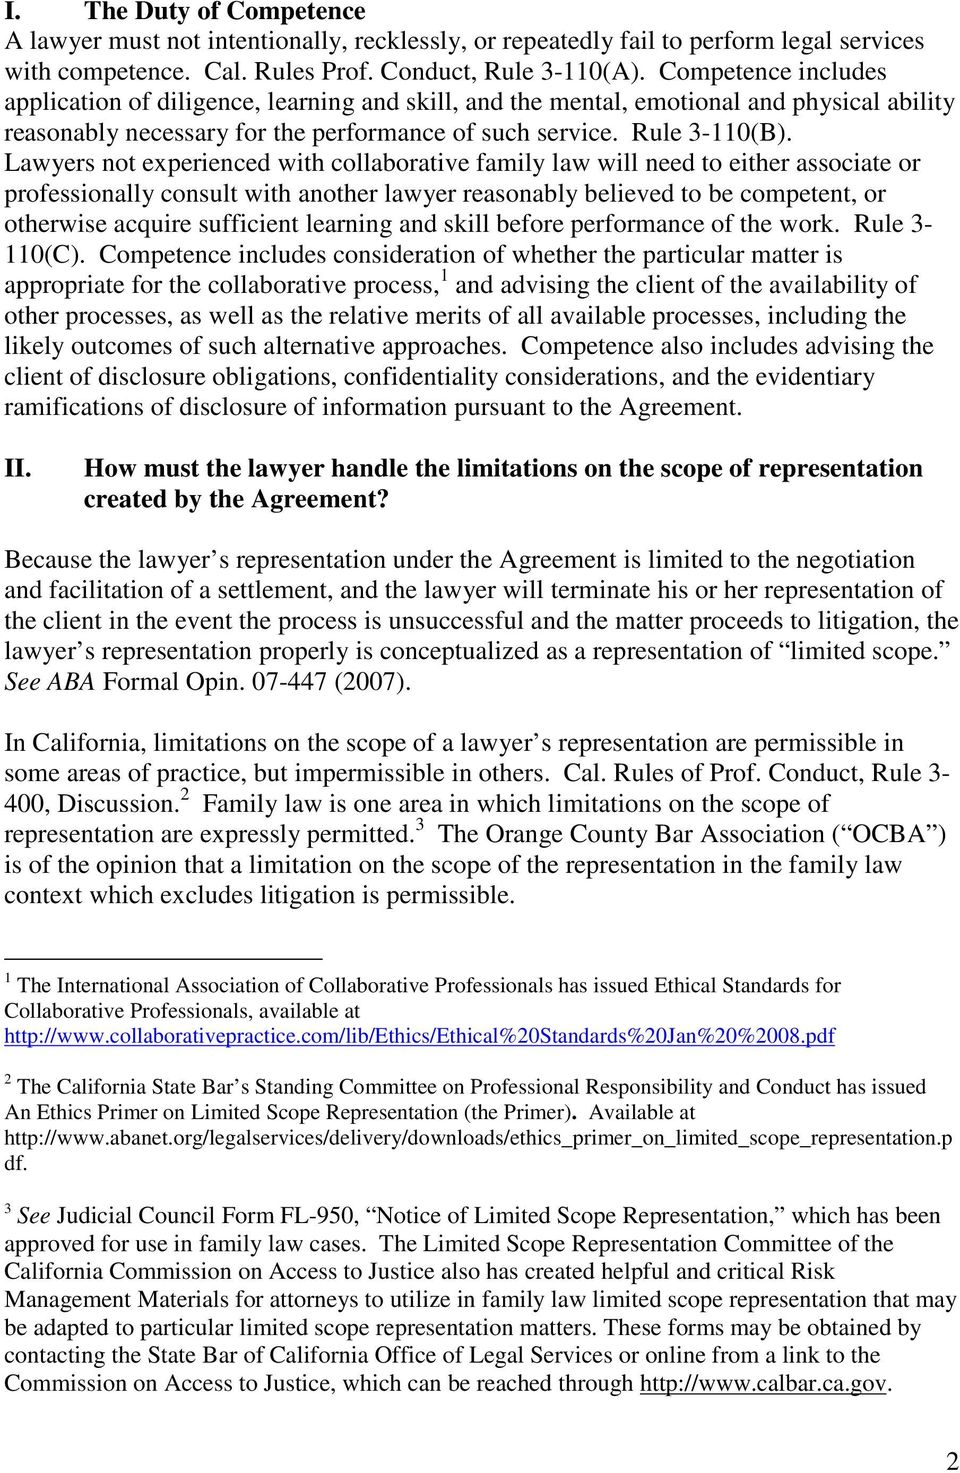 Orange County Bar Association Formal Opinion Collaborative Family